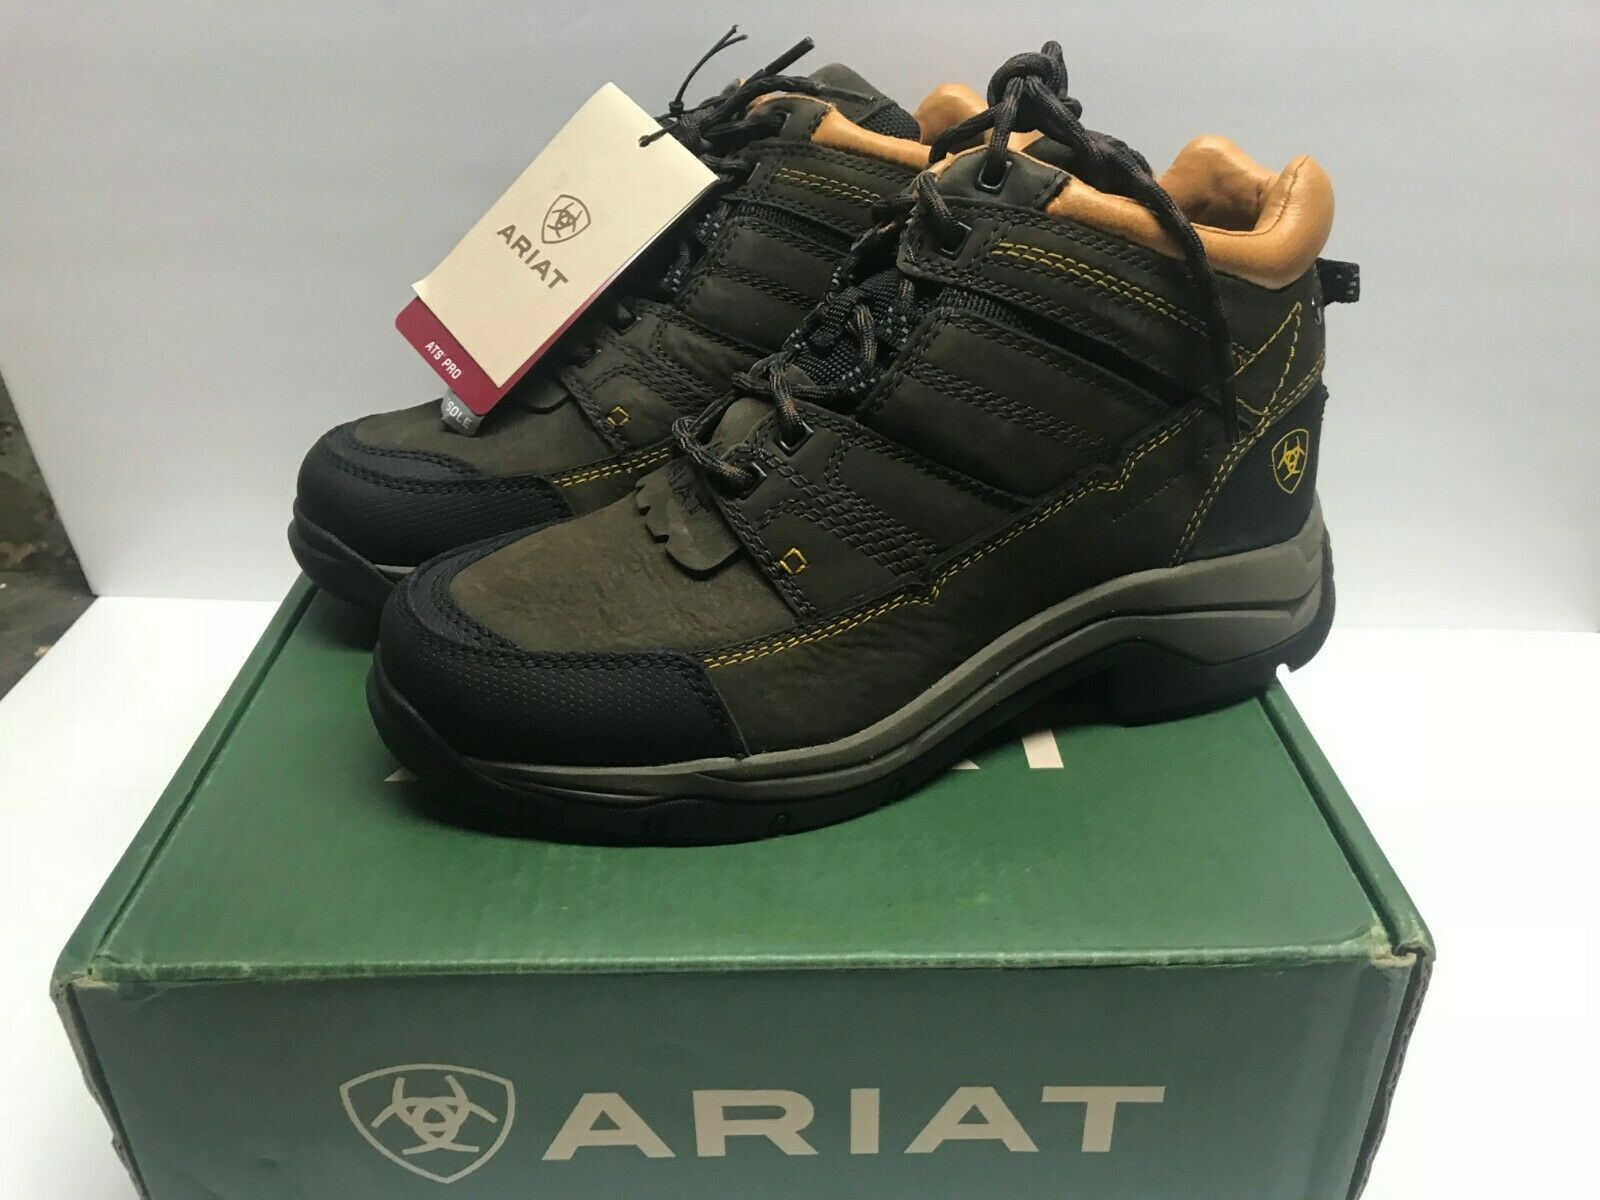 Ariat Wouomo 8 Terrain Pro  H2O Hiking avvio Guinness Java Marronee impermeabile  vendendo bene in tutto il mondo